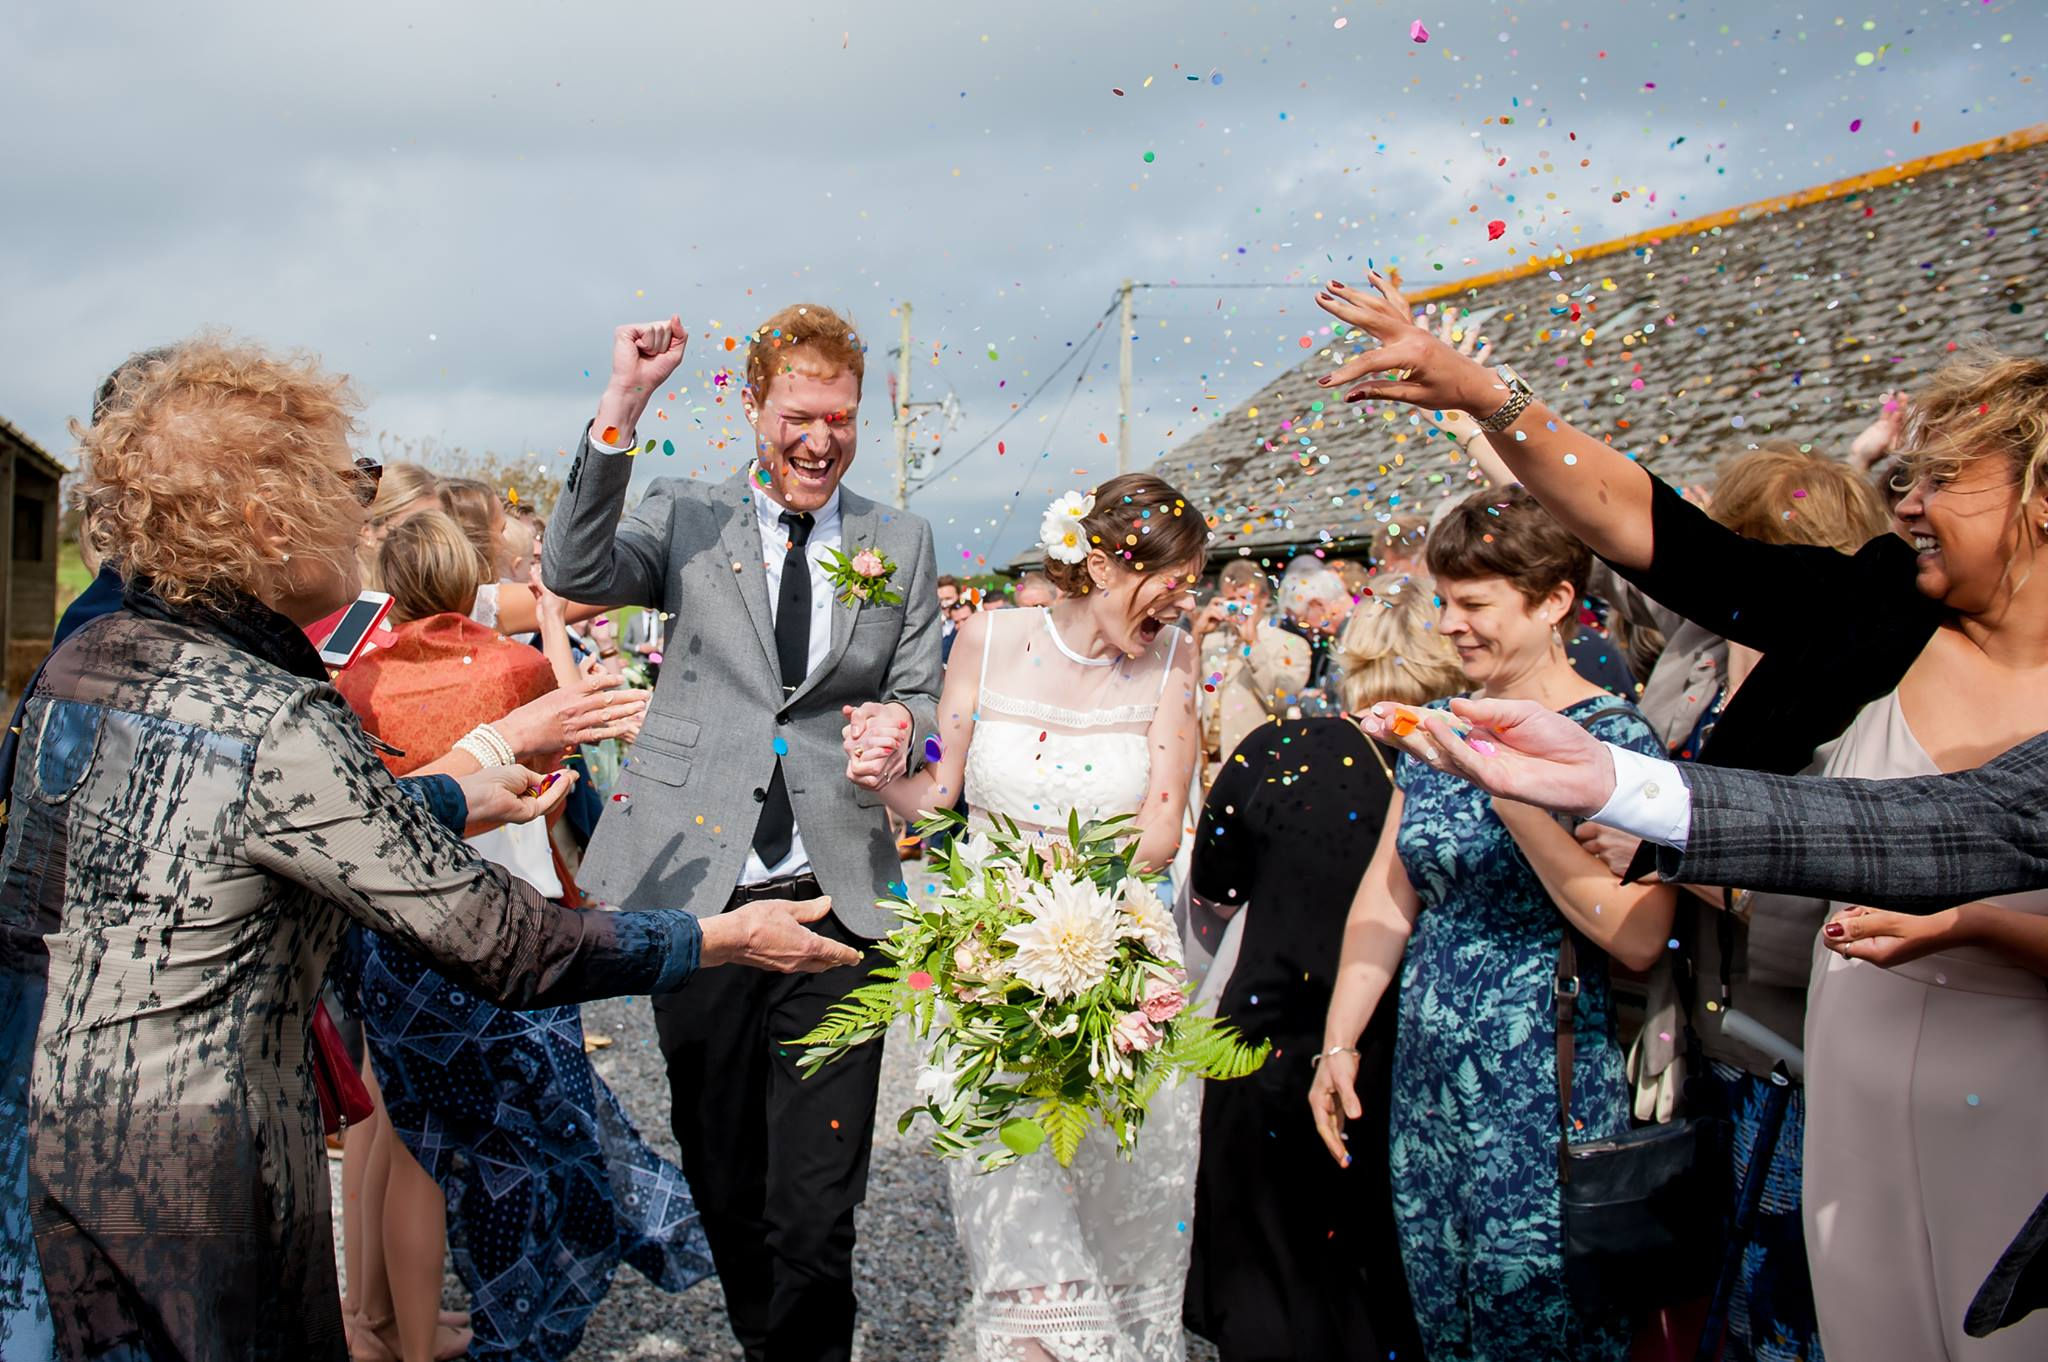 Photo of a wedding couple with confetti after the ceremony